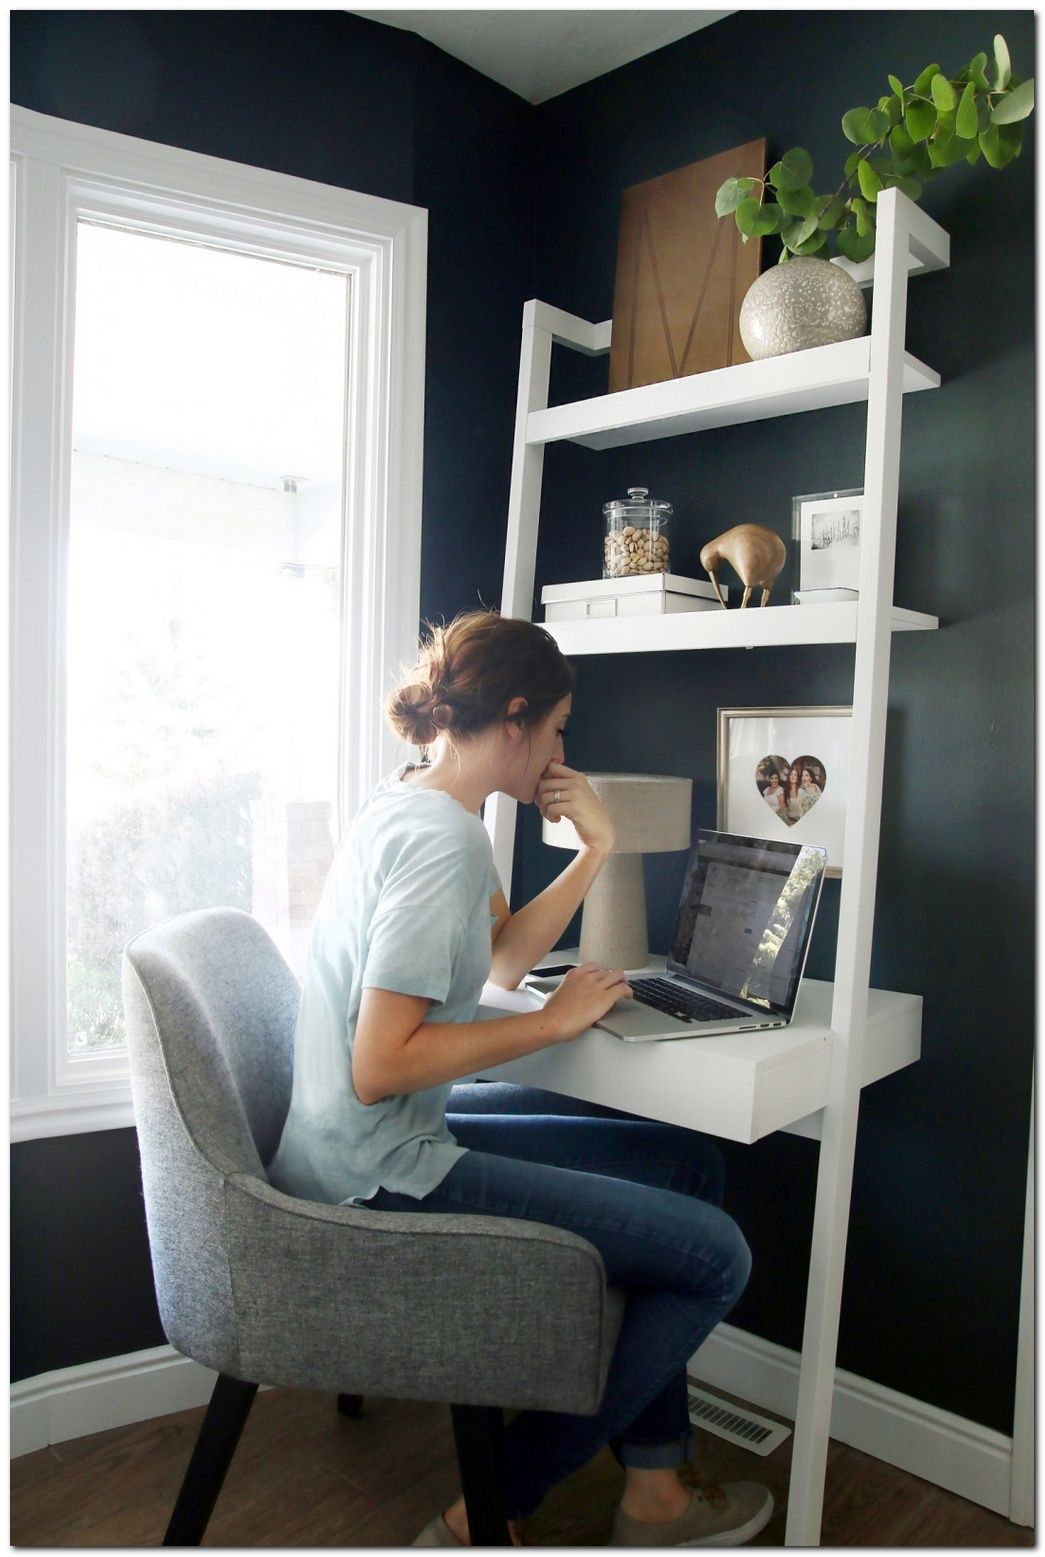 51 Smart Ideas For Small Apartment The Urban Interior Small Home Offices Small Room Design Home Office Design